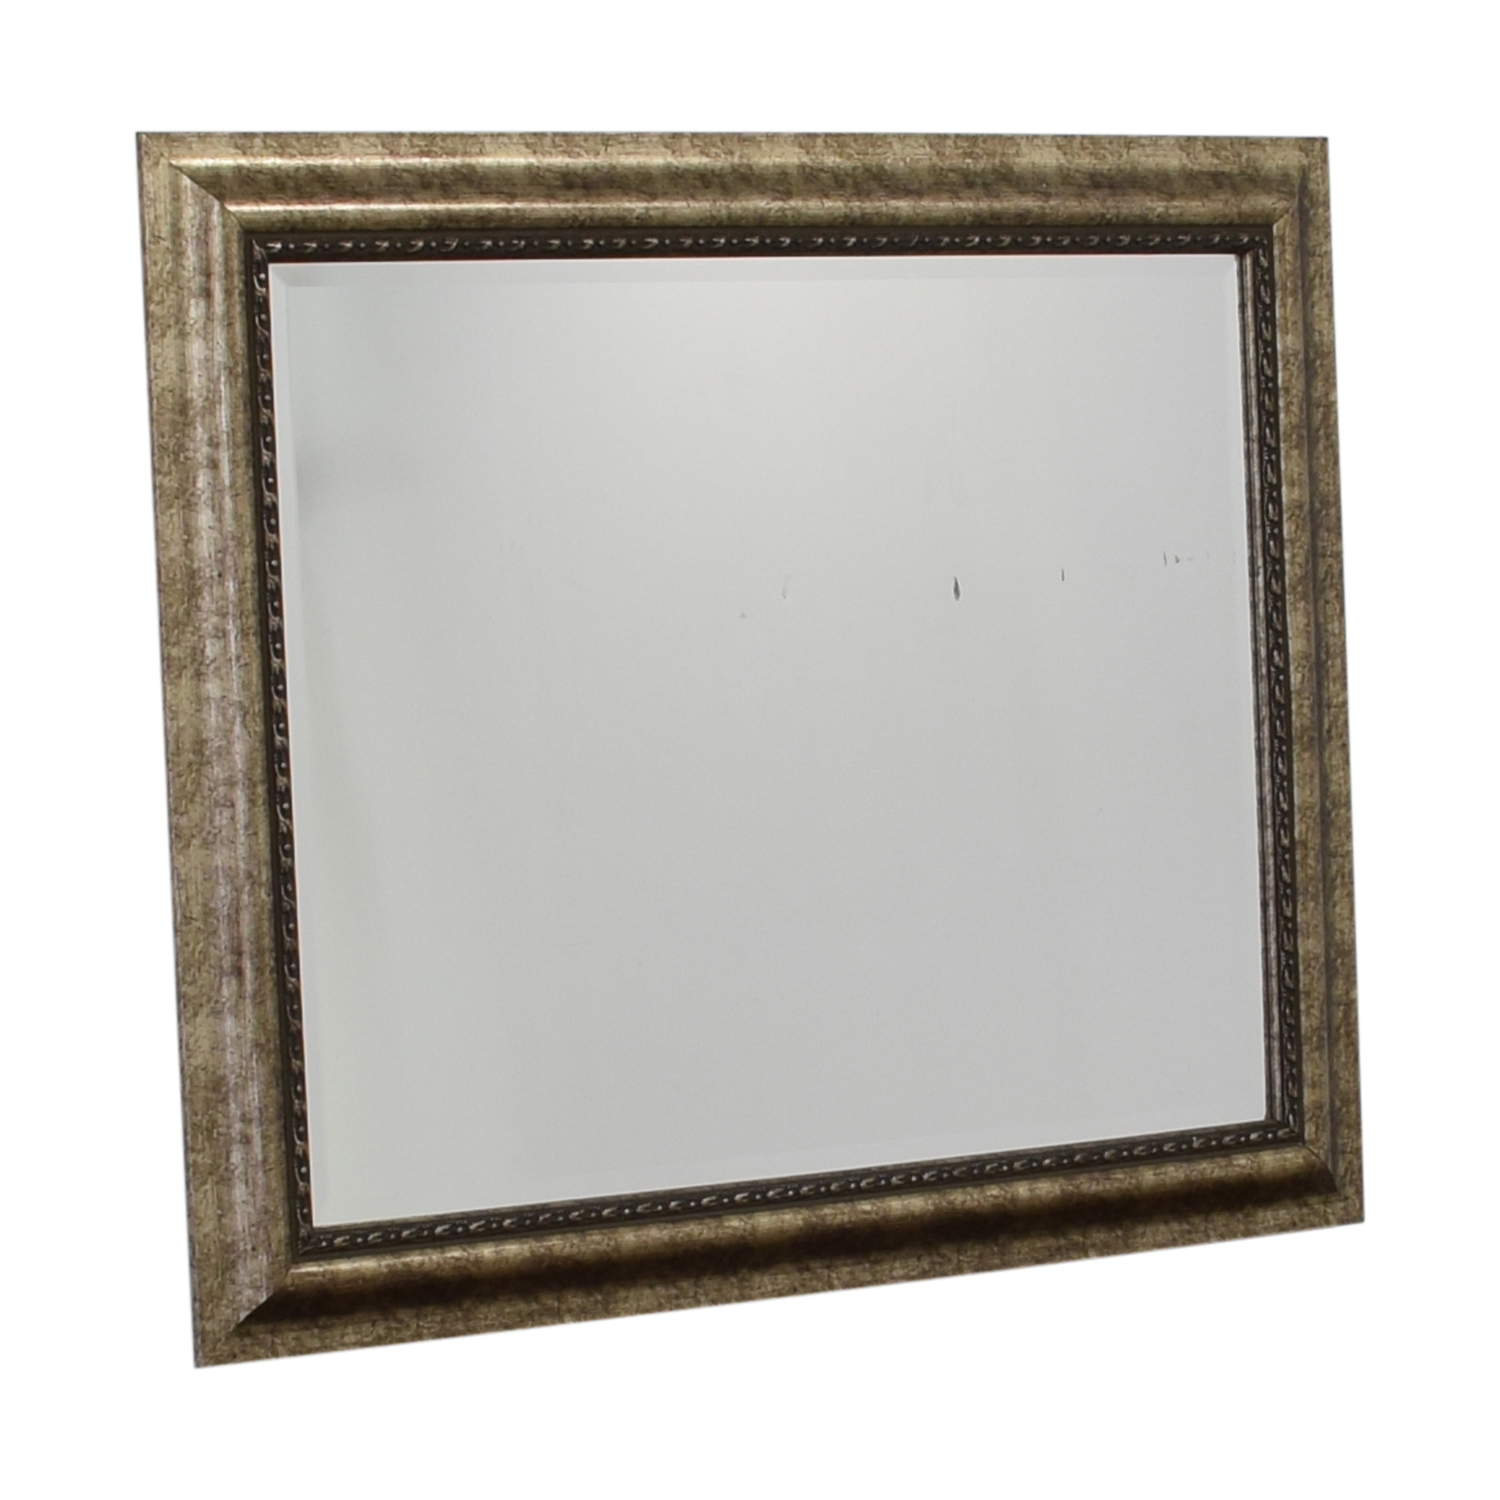 Bed Bath & Beyond Large Framed Mirror / Mirrors